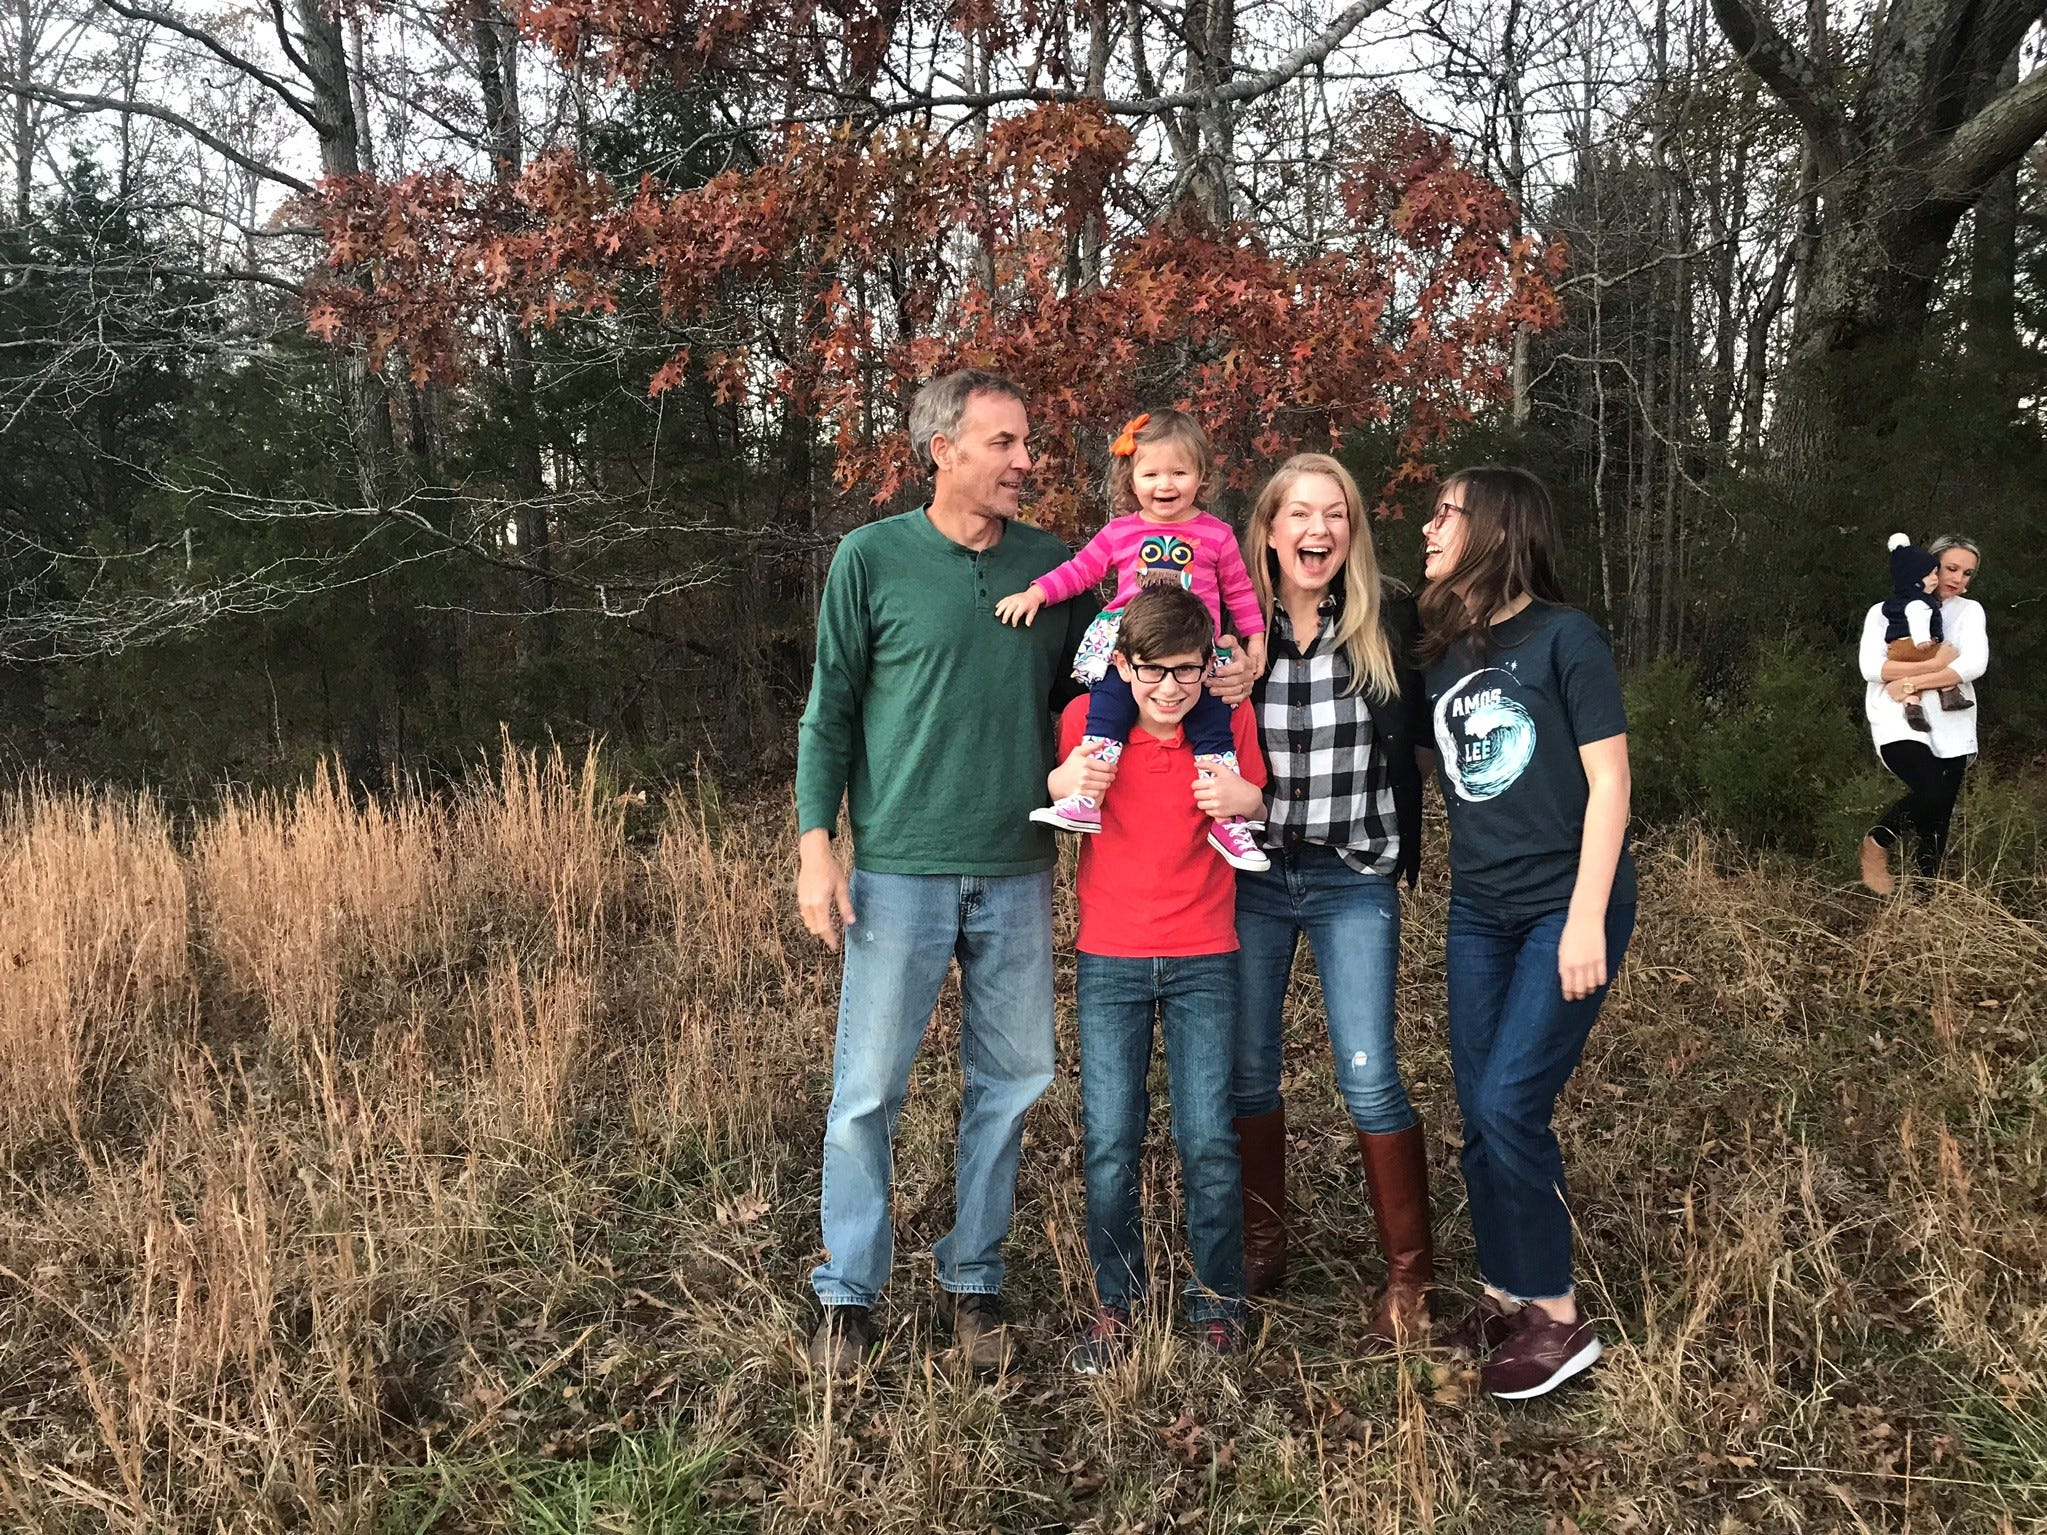 Erin Seay-Taylor and her family live on Carney Winters Road, where Ashland City Farms is located.